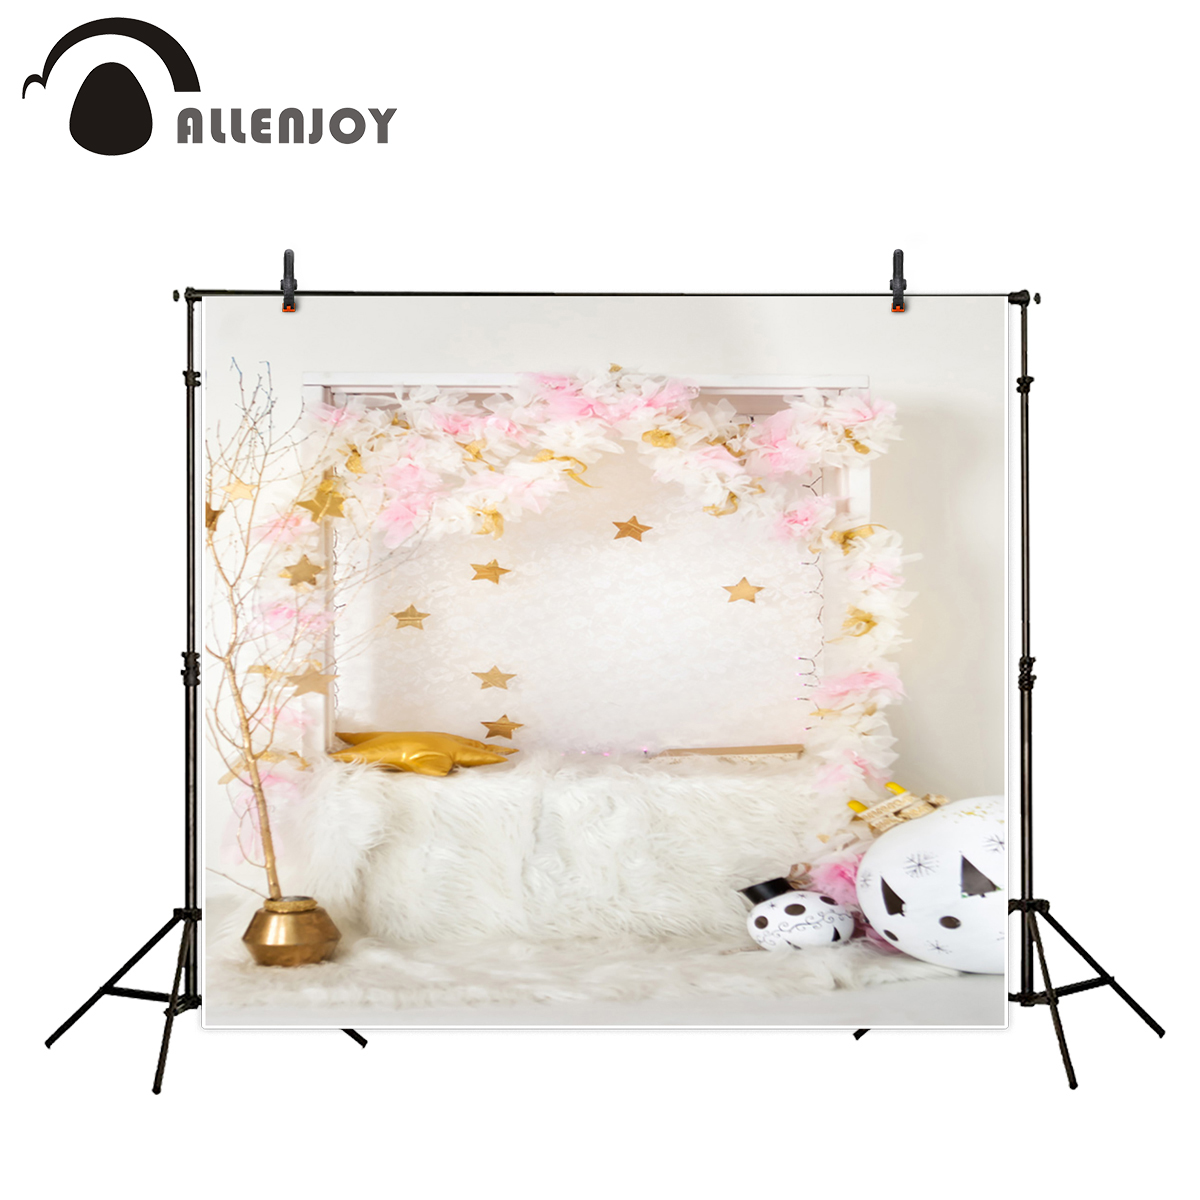 Allenjoy photography backdrops Children background gold stars white blanket flowers indoor photography photo backdrops newborn